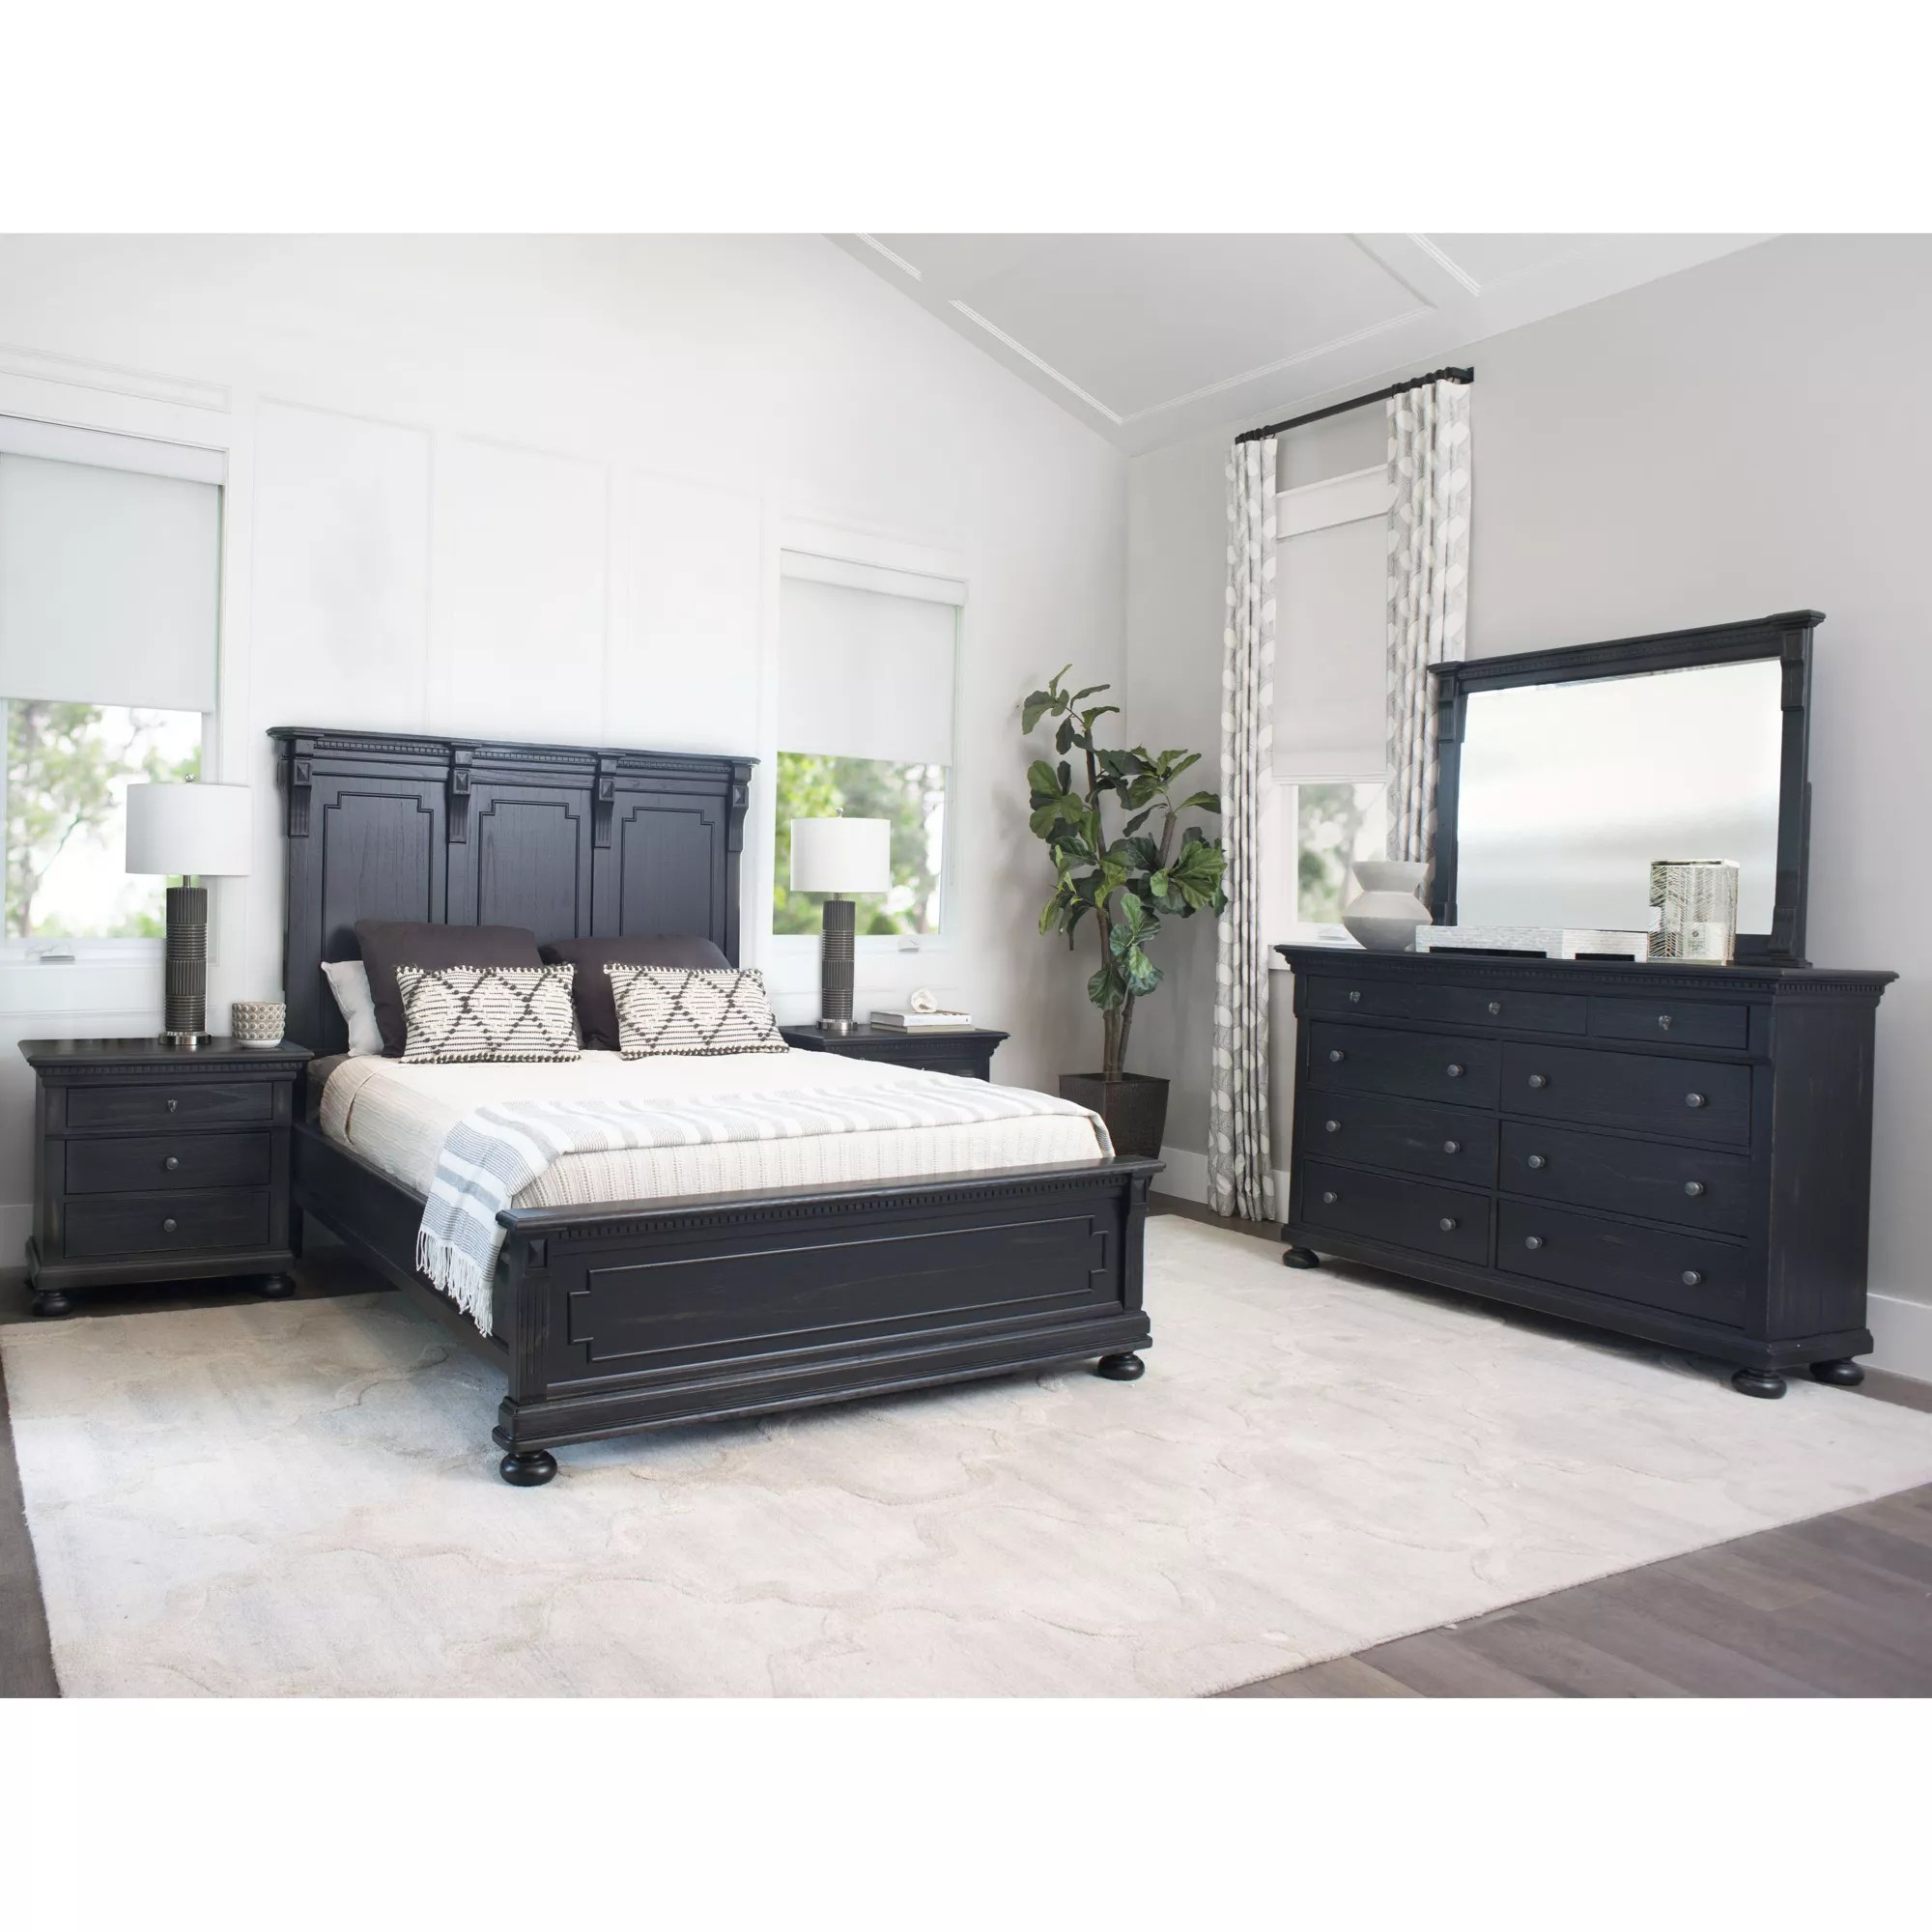 abbyson living hartford 5 pc king size bedroom set black